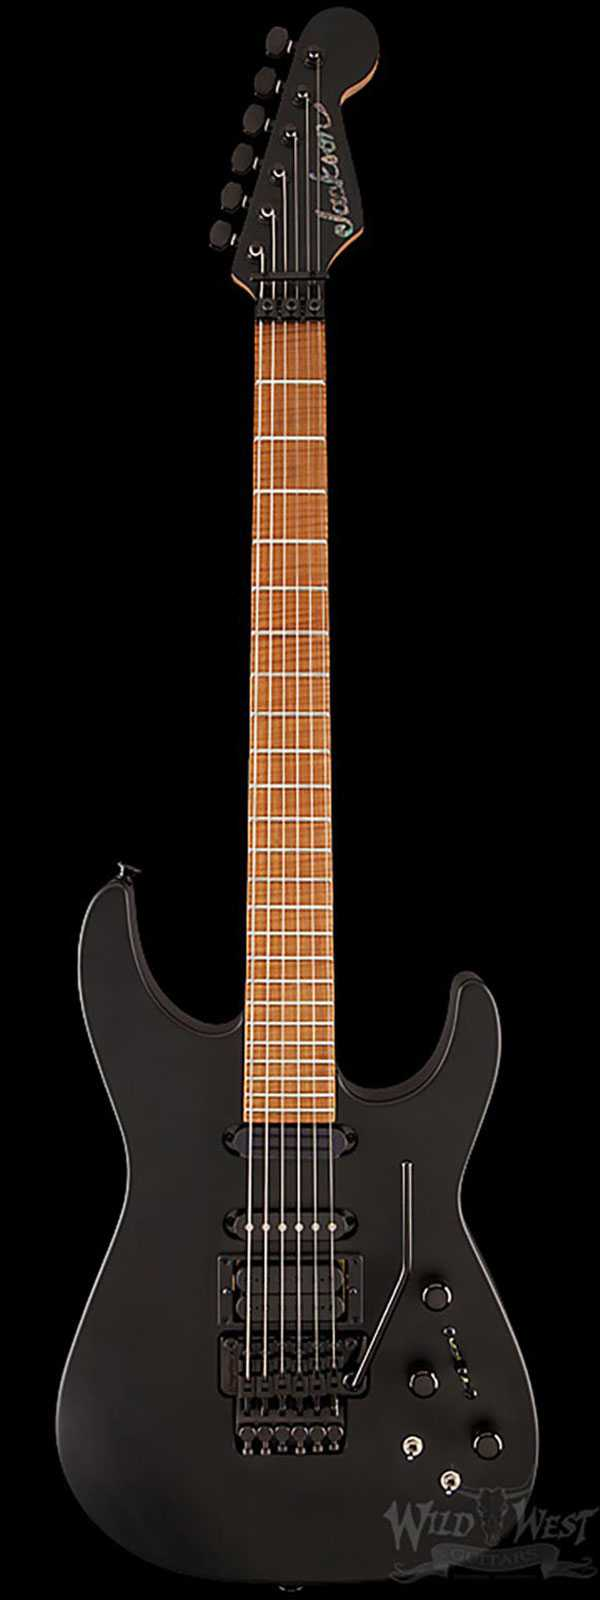 Jackson Custom Shop Special Edition PC1 Maple Fingerboard Satin Black - One of 25 Made